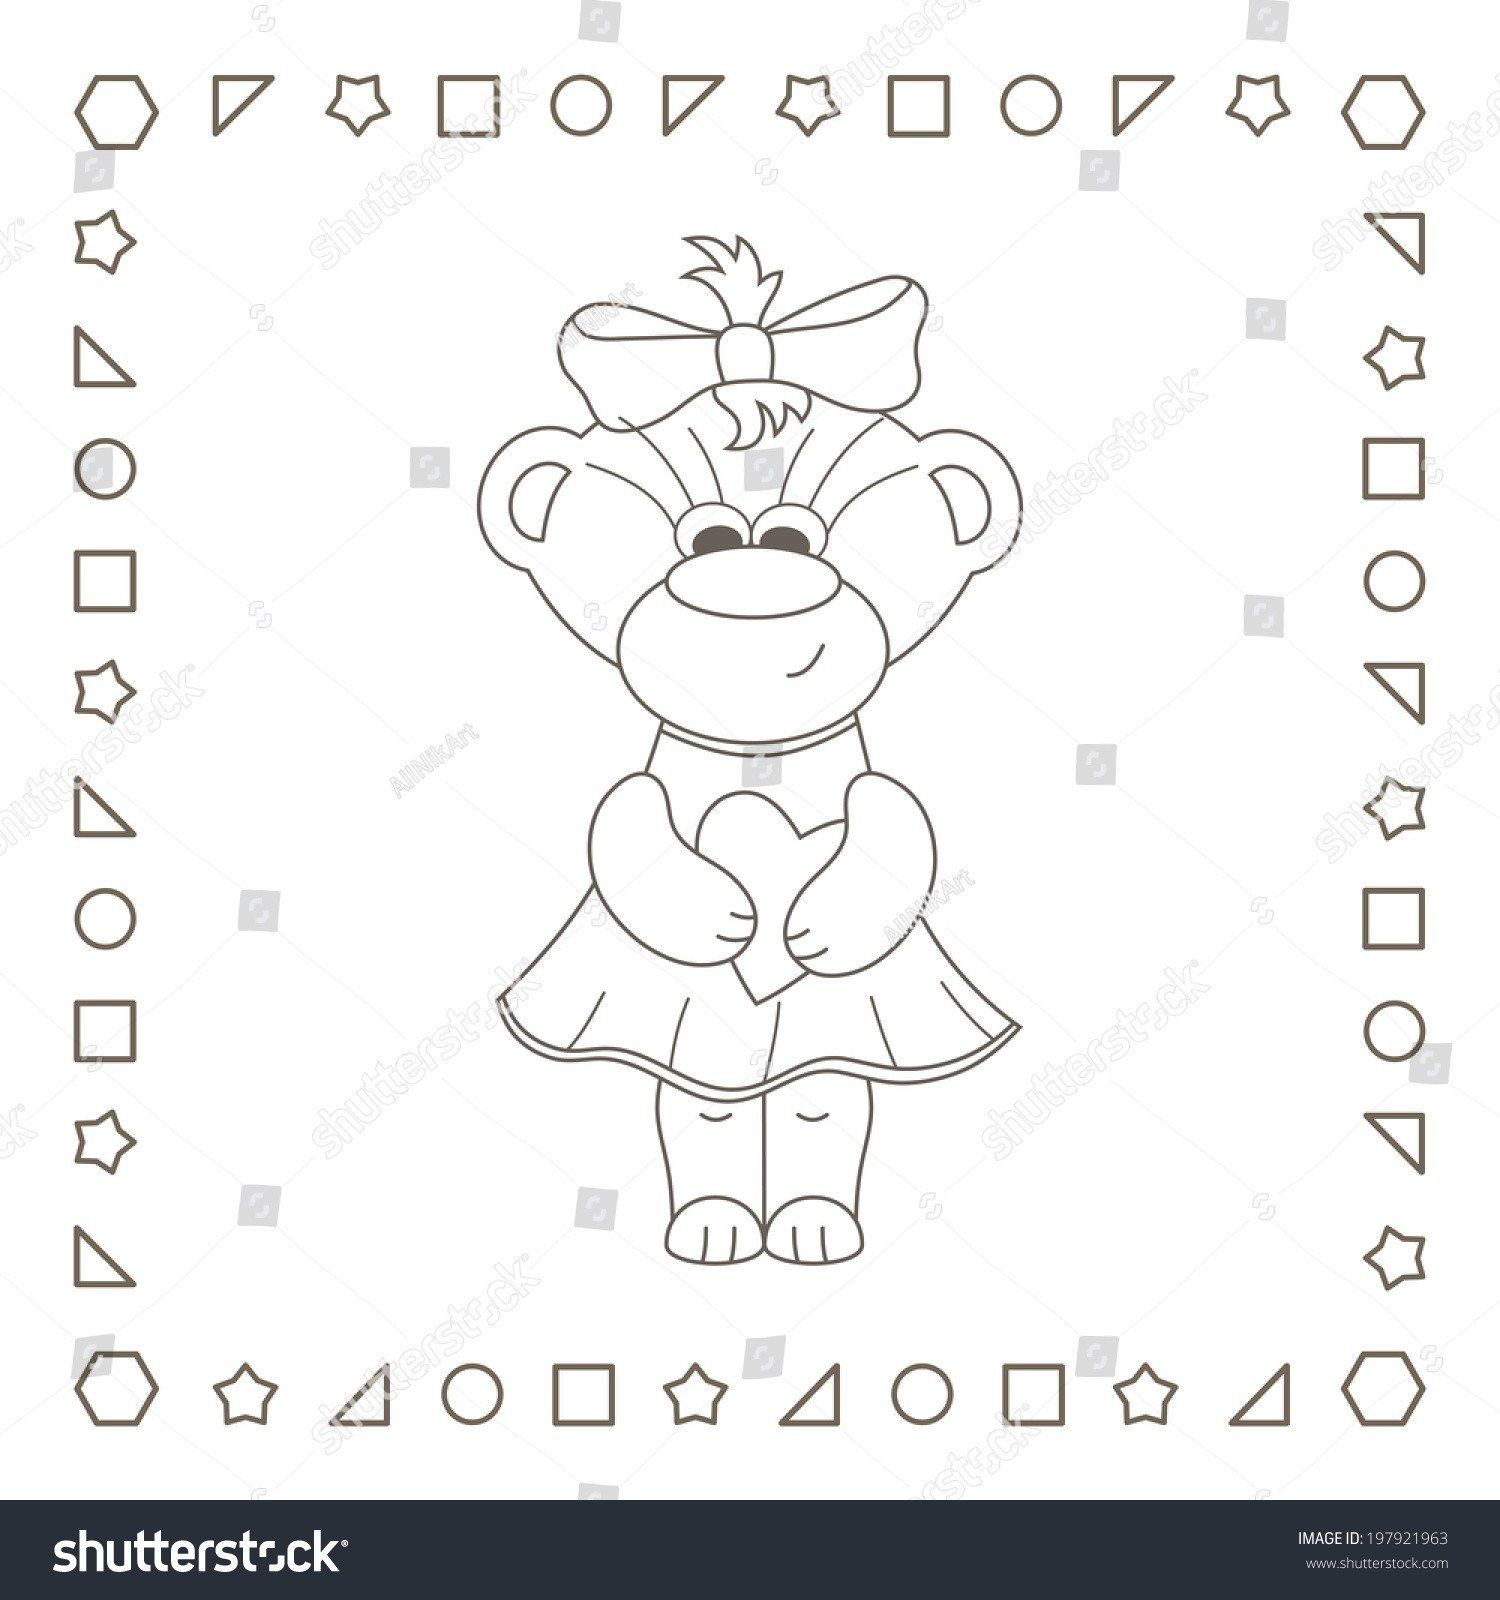 Teddy Bear Coloring Page Fresh Lovely Teddy Bear with